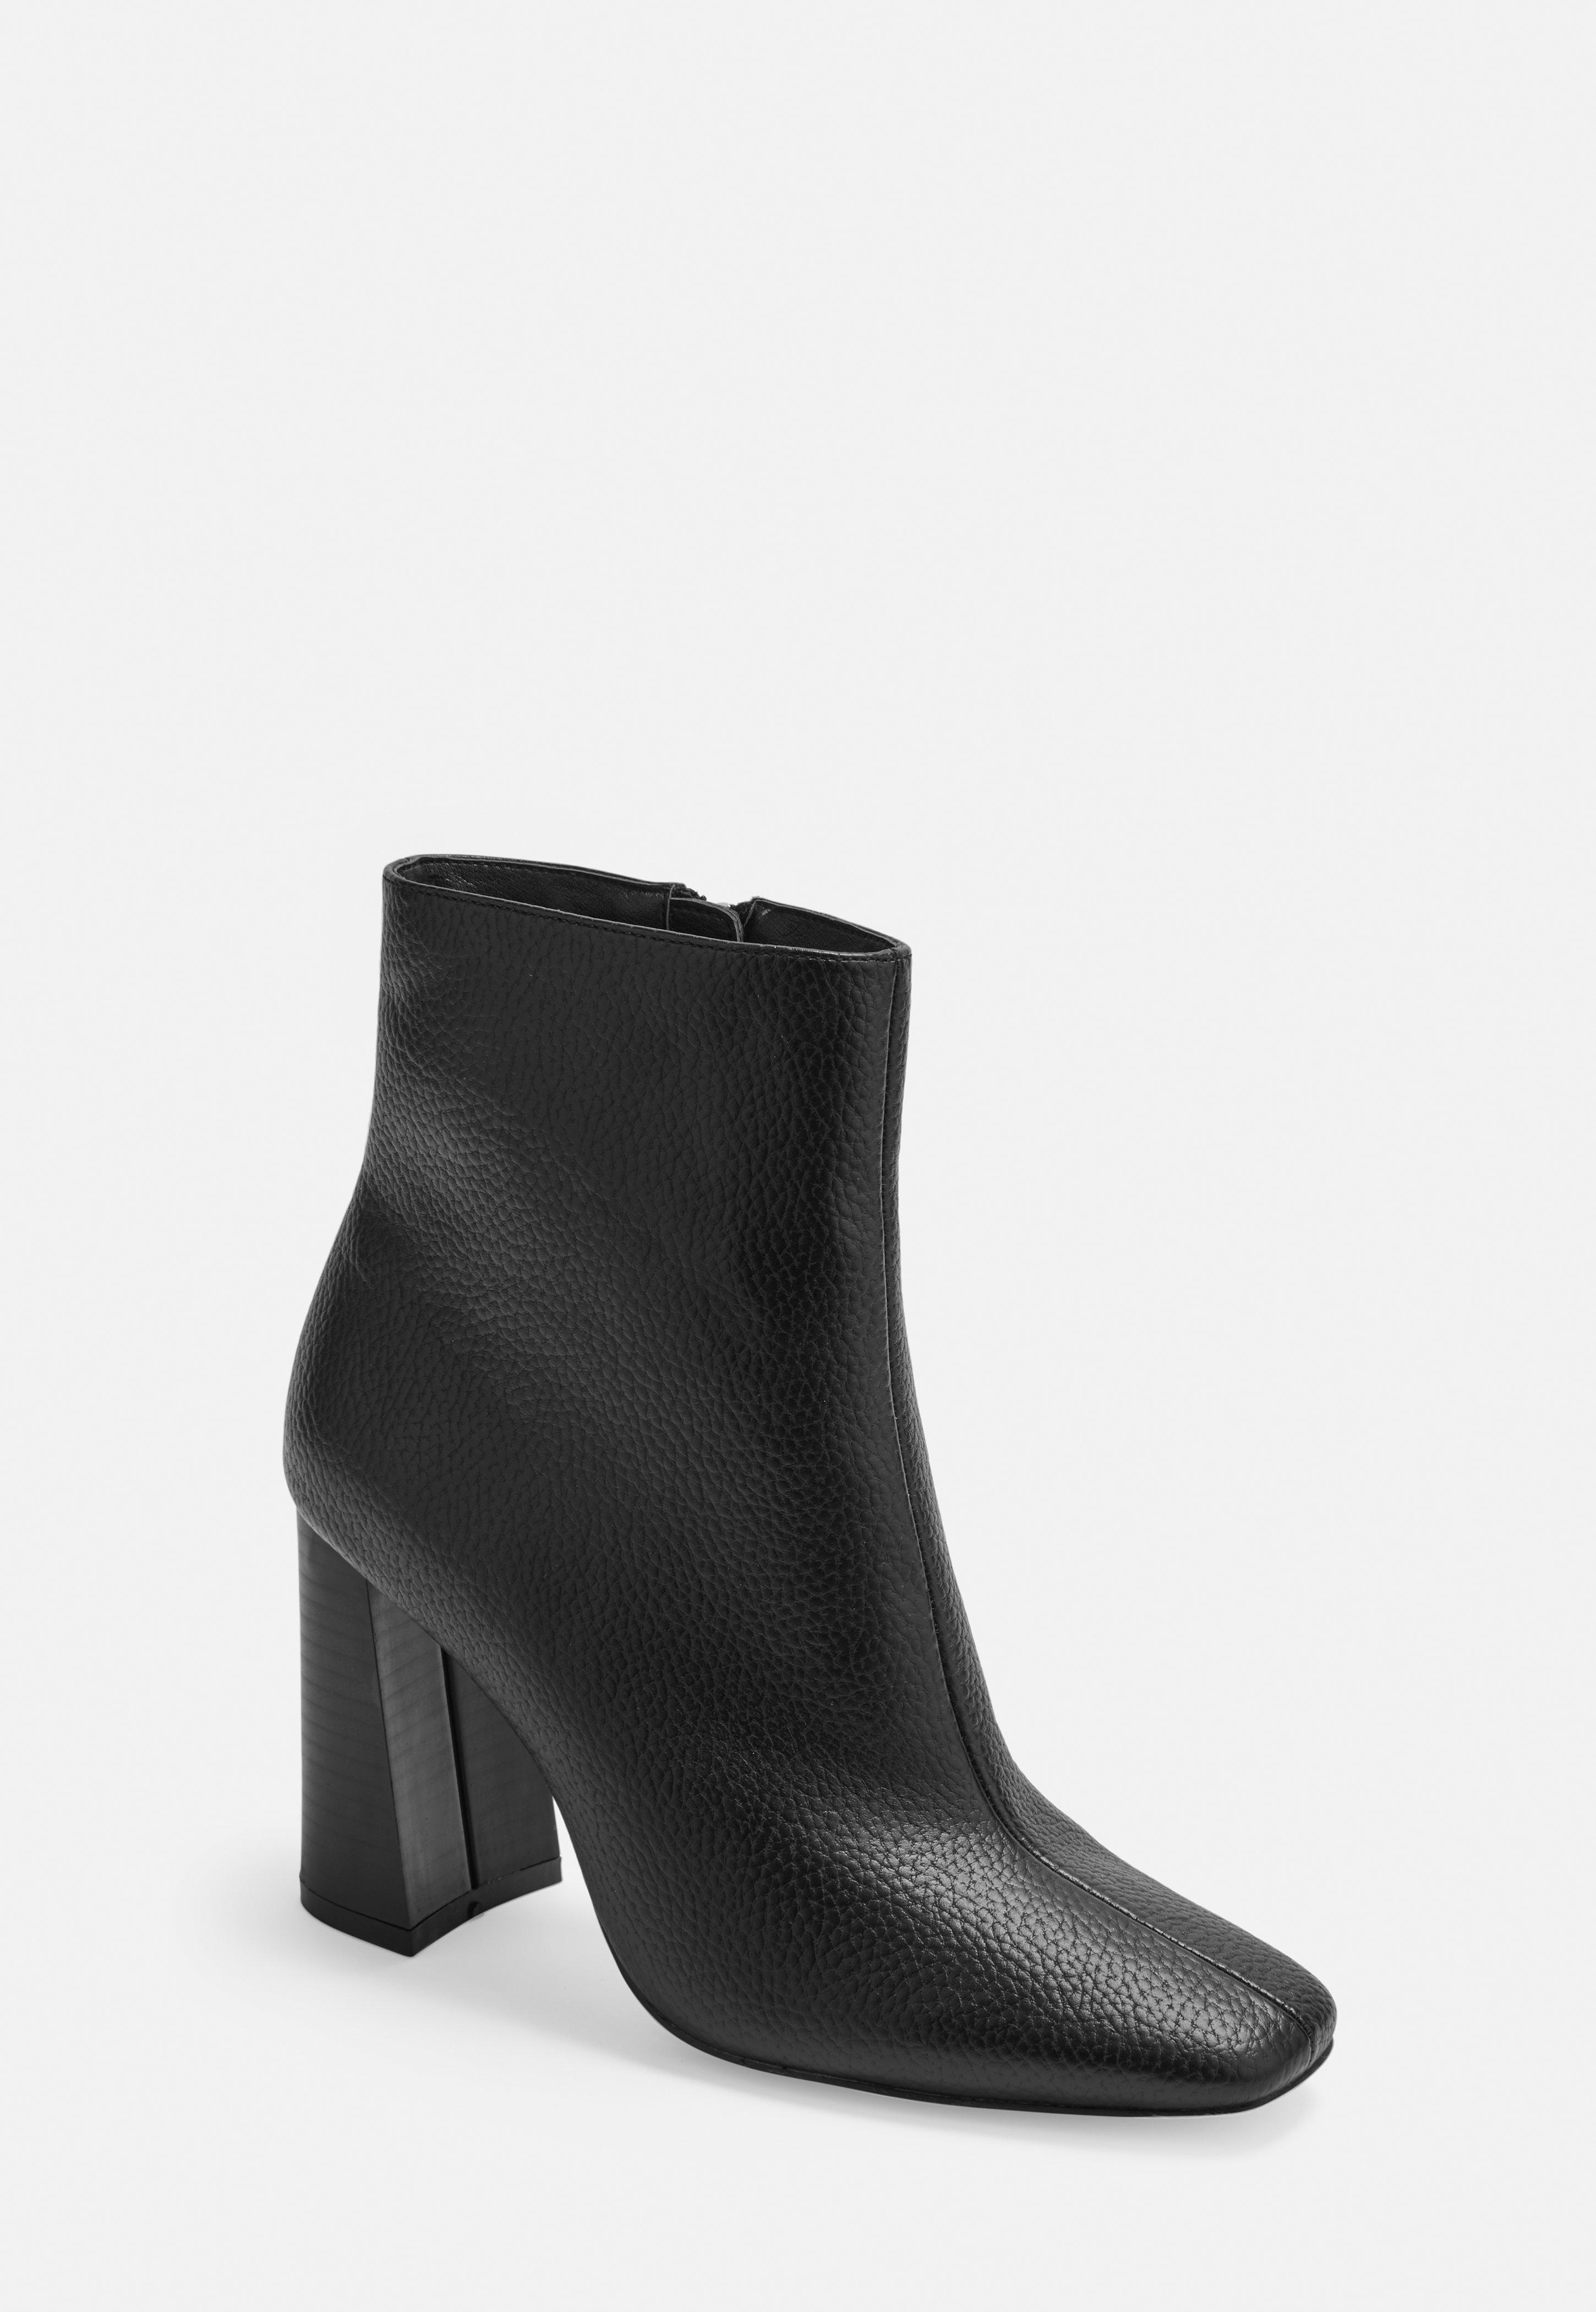 272e6b1bf838c Women's Boots   Ankle Boots   Black Boots   Missguided